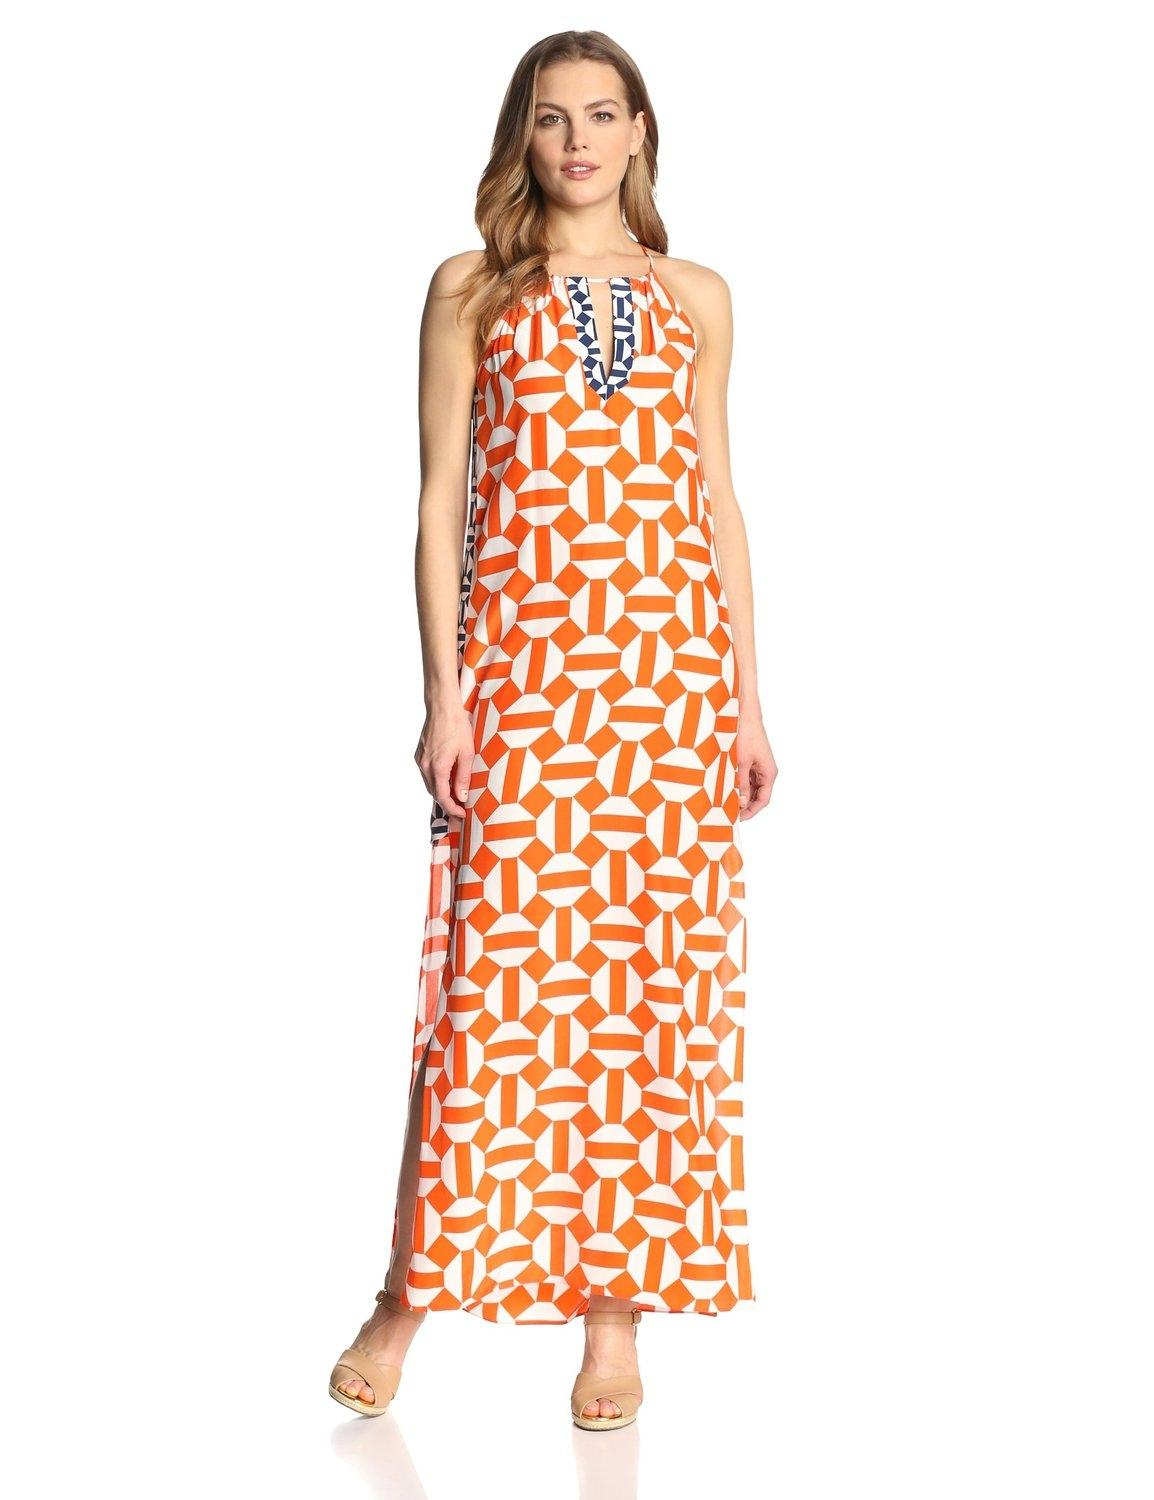 JEAN PAUL GAULTIER maxi dress comes in blue and orange palm print micro stretch mesh with a spaghetti strap bralette top and empire waist long, tiered, maxi skirt. Made in .